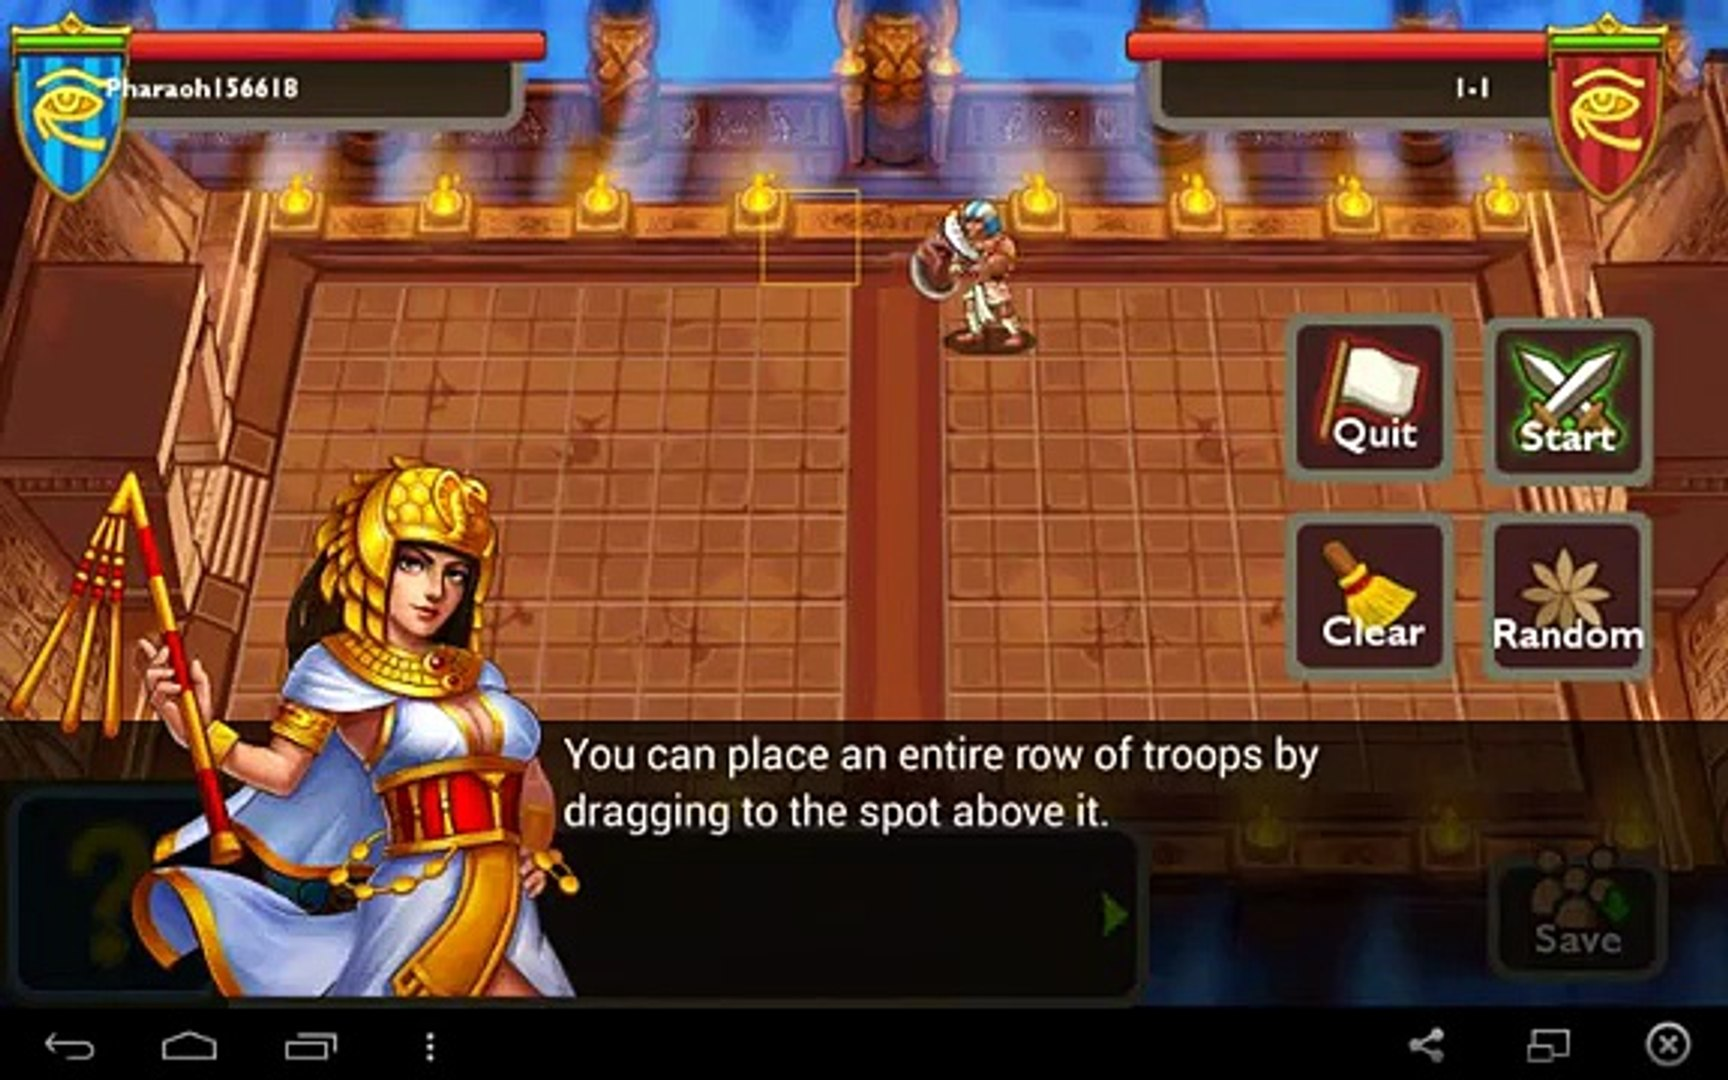 Pharaohs War for Android GamePlay